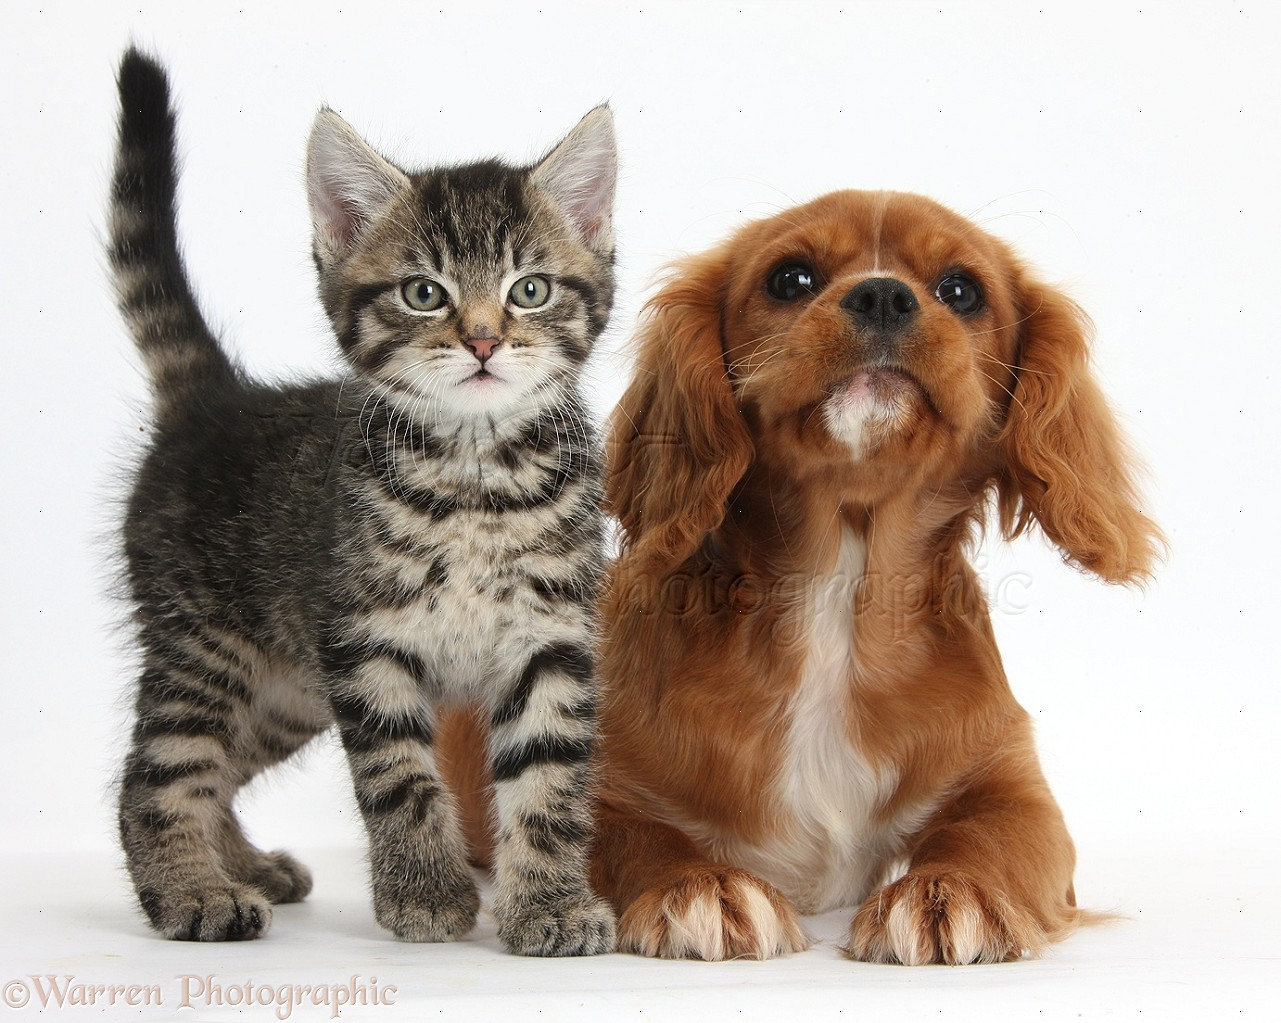 Most Inspiring Charles Spaniel Brown Adorable Dog - 37067-Cute-tabby-kitten-and-Ruby-Cavalier-Spaniel-white-background  Collection_11438  .jpg